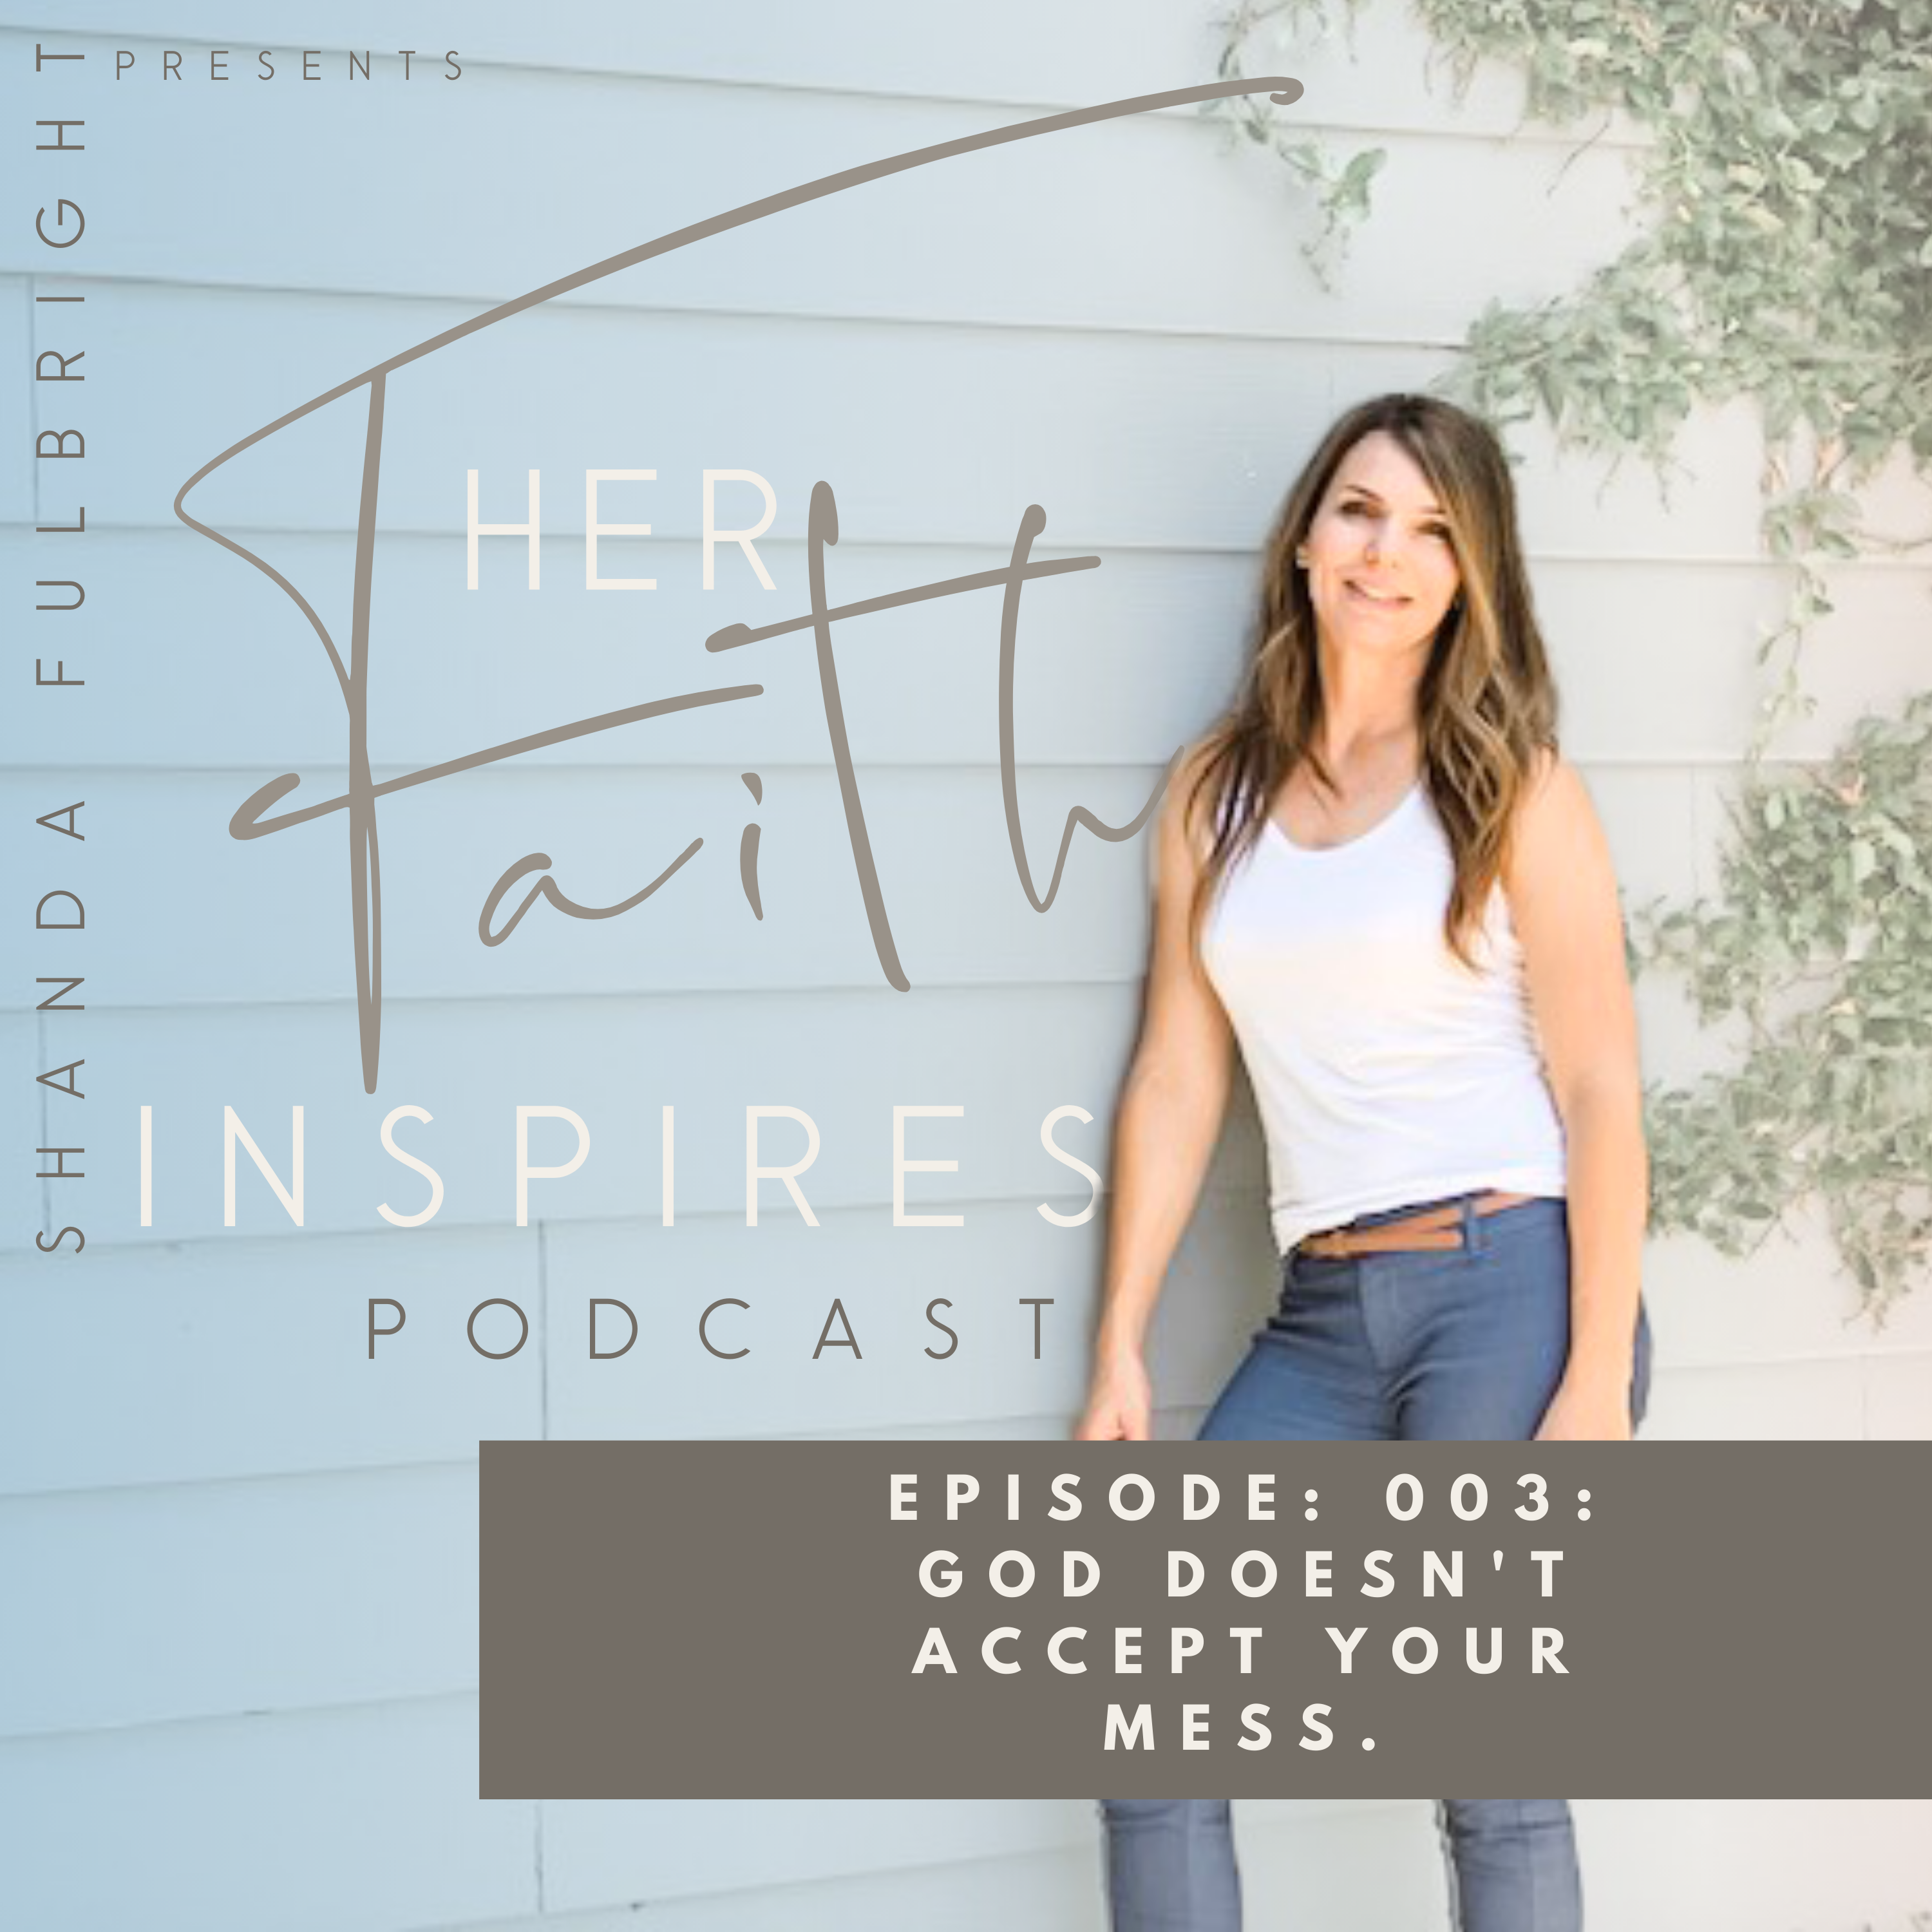 Shanda Fulbright Podcast Episode3 - Her Faith Inspires Podcast 003: God Doesn't Accept Your Mess.